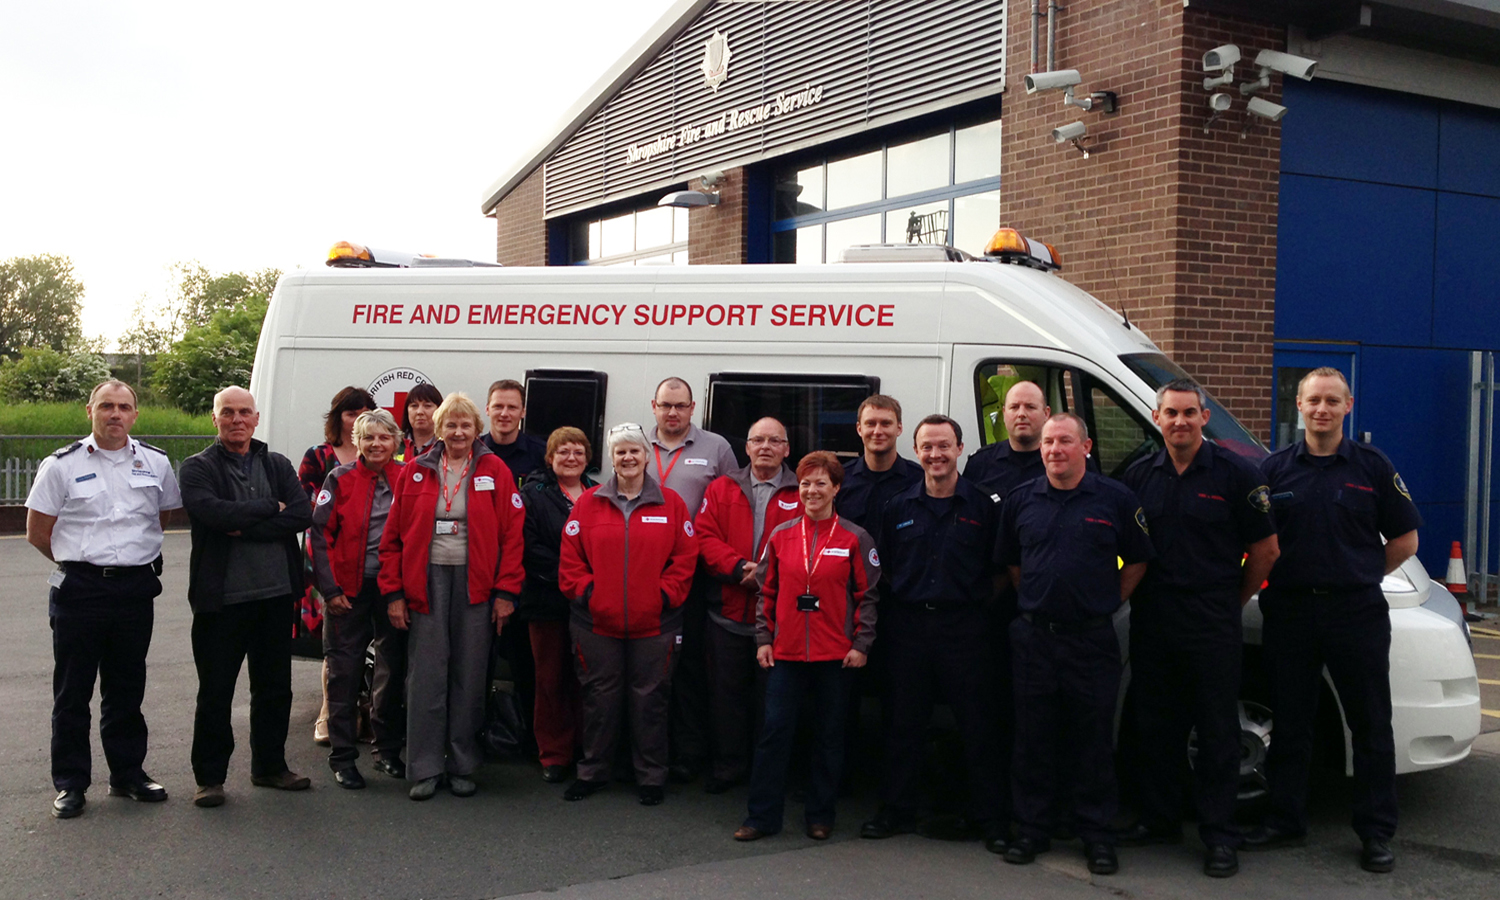 Volunteers with members of White Watch Shrewsbury and (far left) Chief Fire Officer John Redmond and Red Cross operations director Andrew Strong.